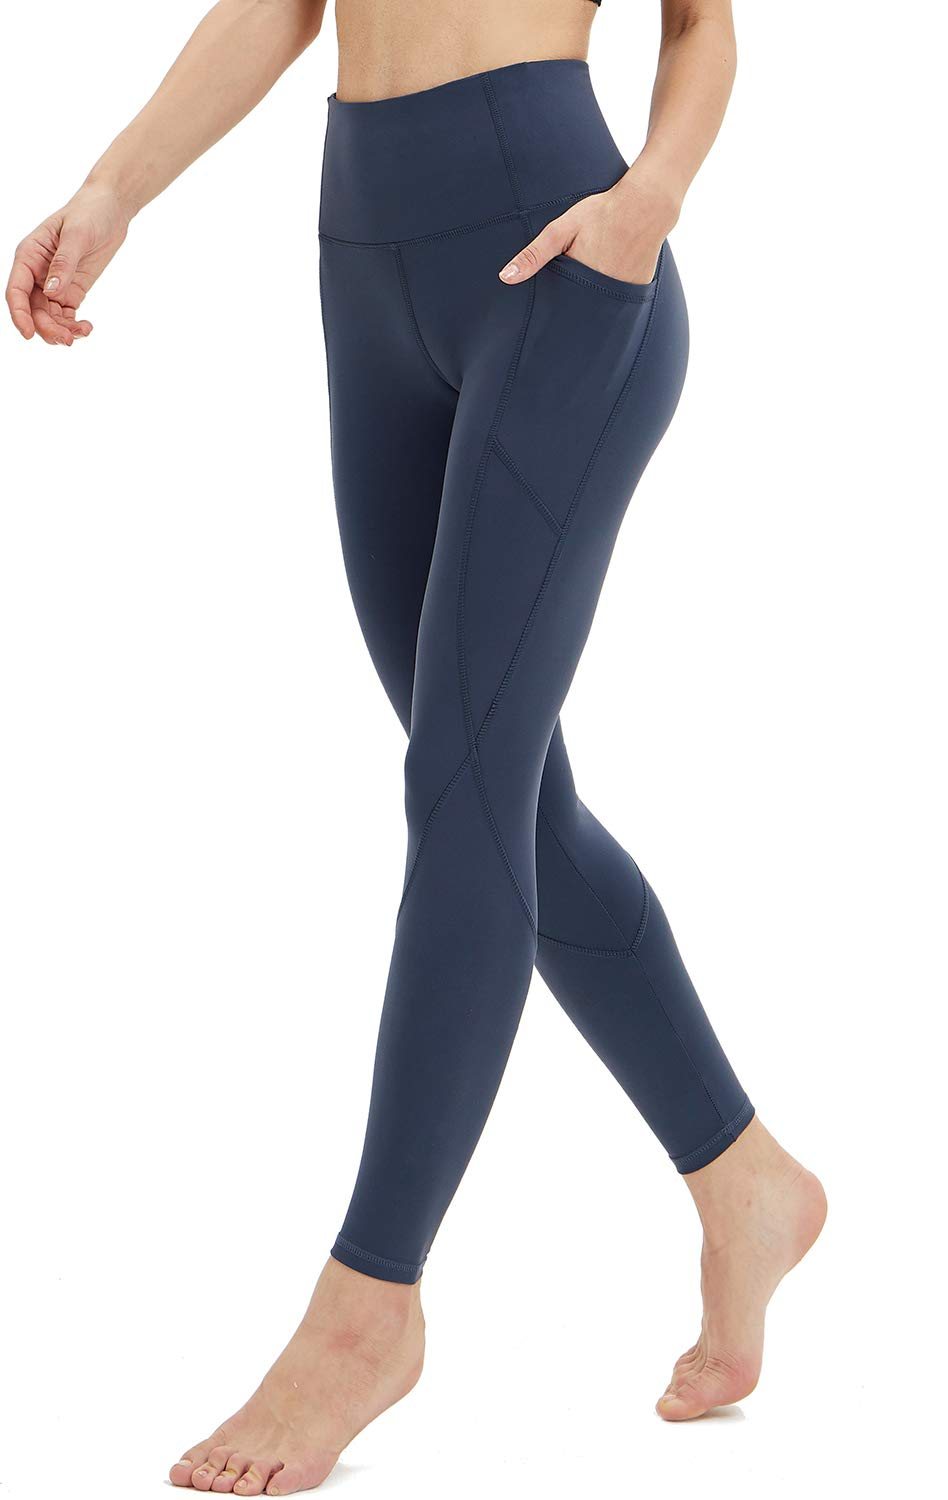 Persit Womens Premium Yoga Pants with Side /& Inner Pockets Non See-Through Tummy Control 4 Way Stretch High Waist Leggings